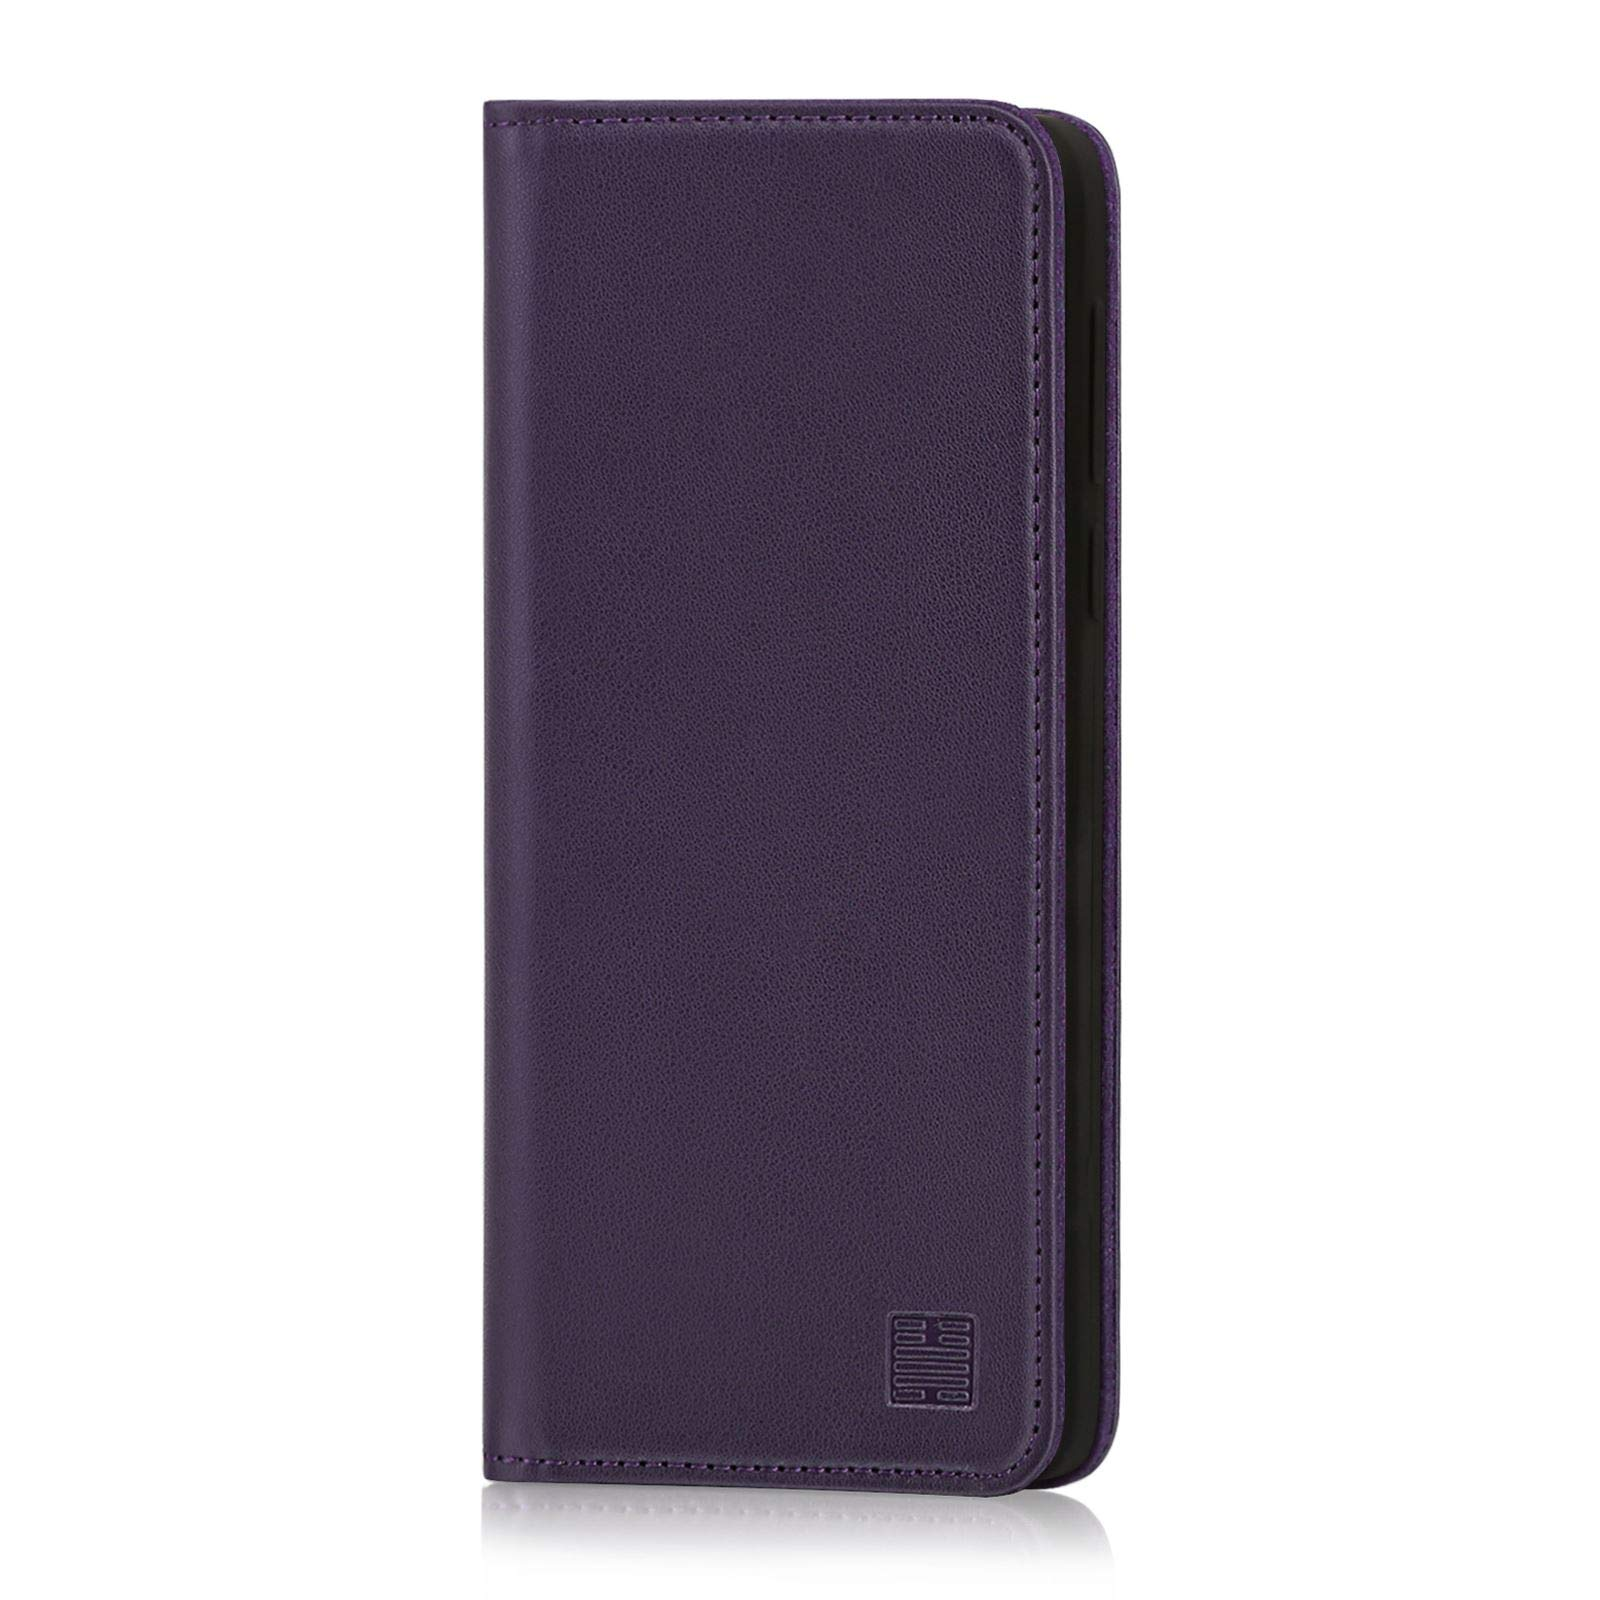 32nd Classic Series - Real Leather Book Wallet Case Cover for Motorola Moto G7 & Moto G7 Plus, Real Leather Design with Card Slot, Magnetic Closure and Built in Stand - Aubergine